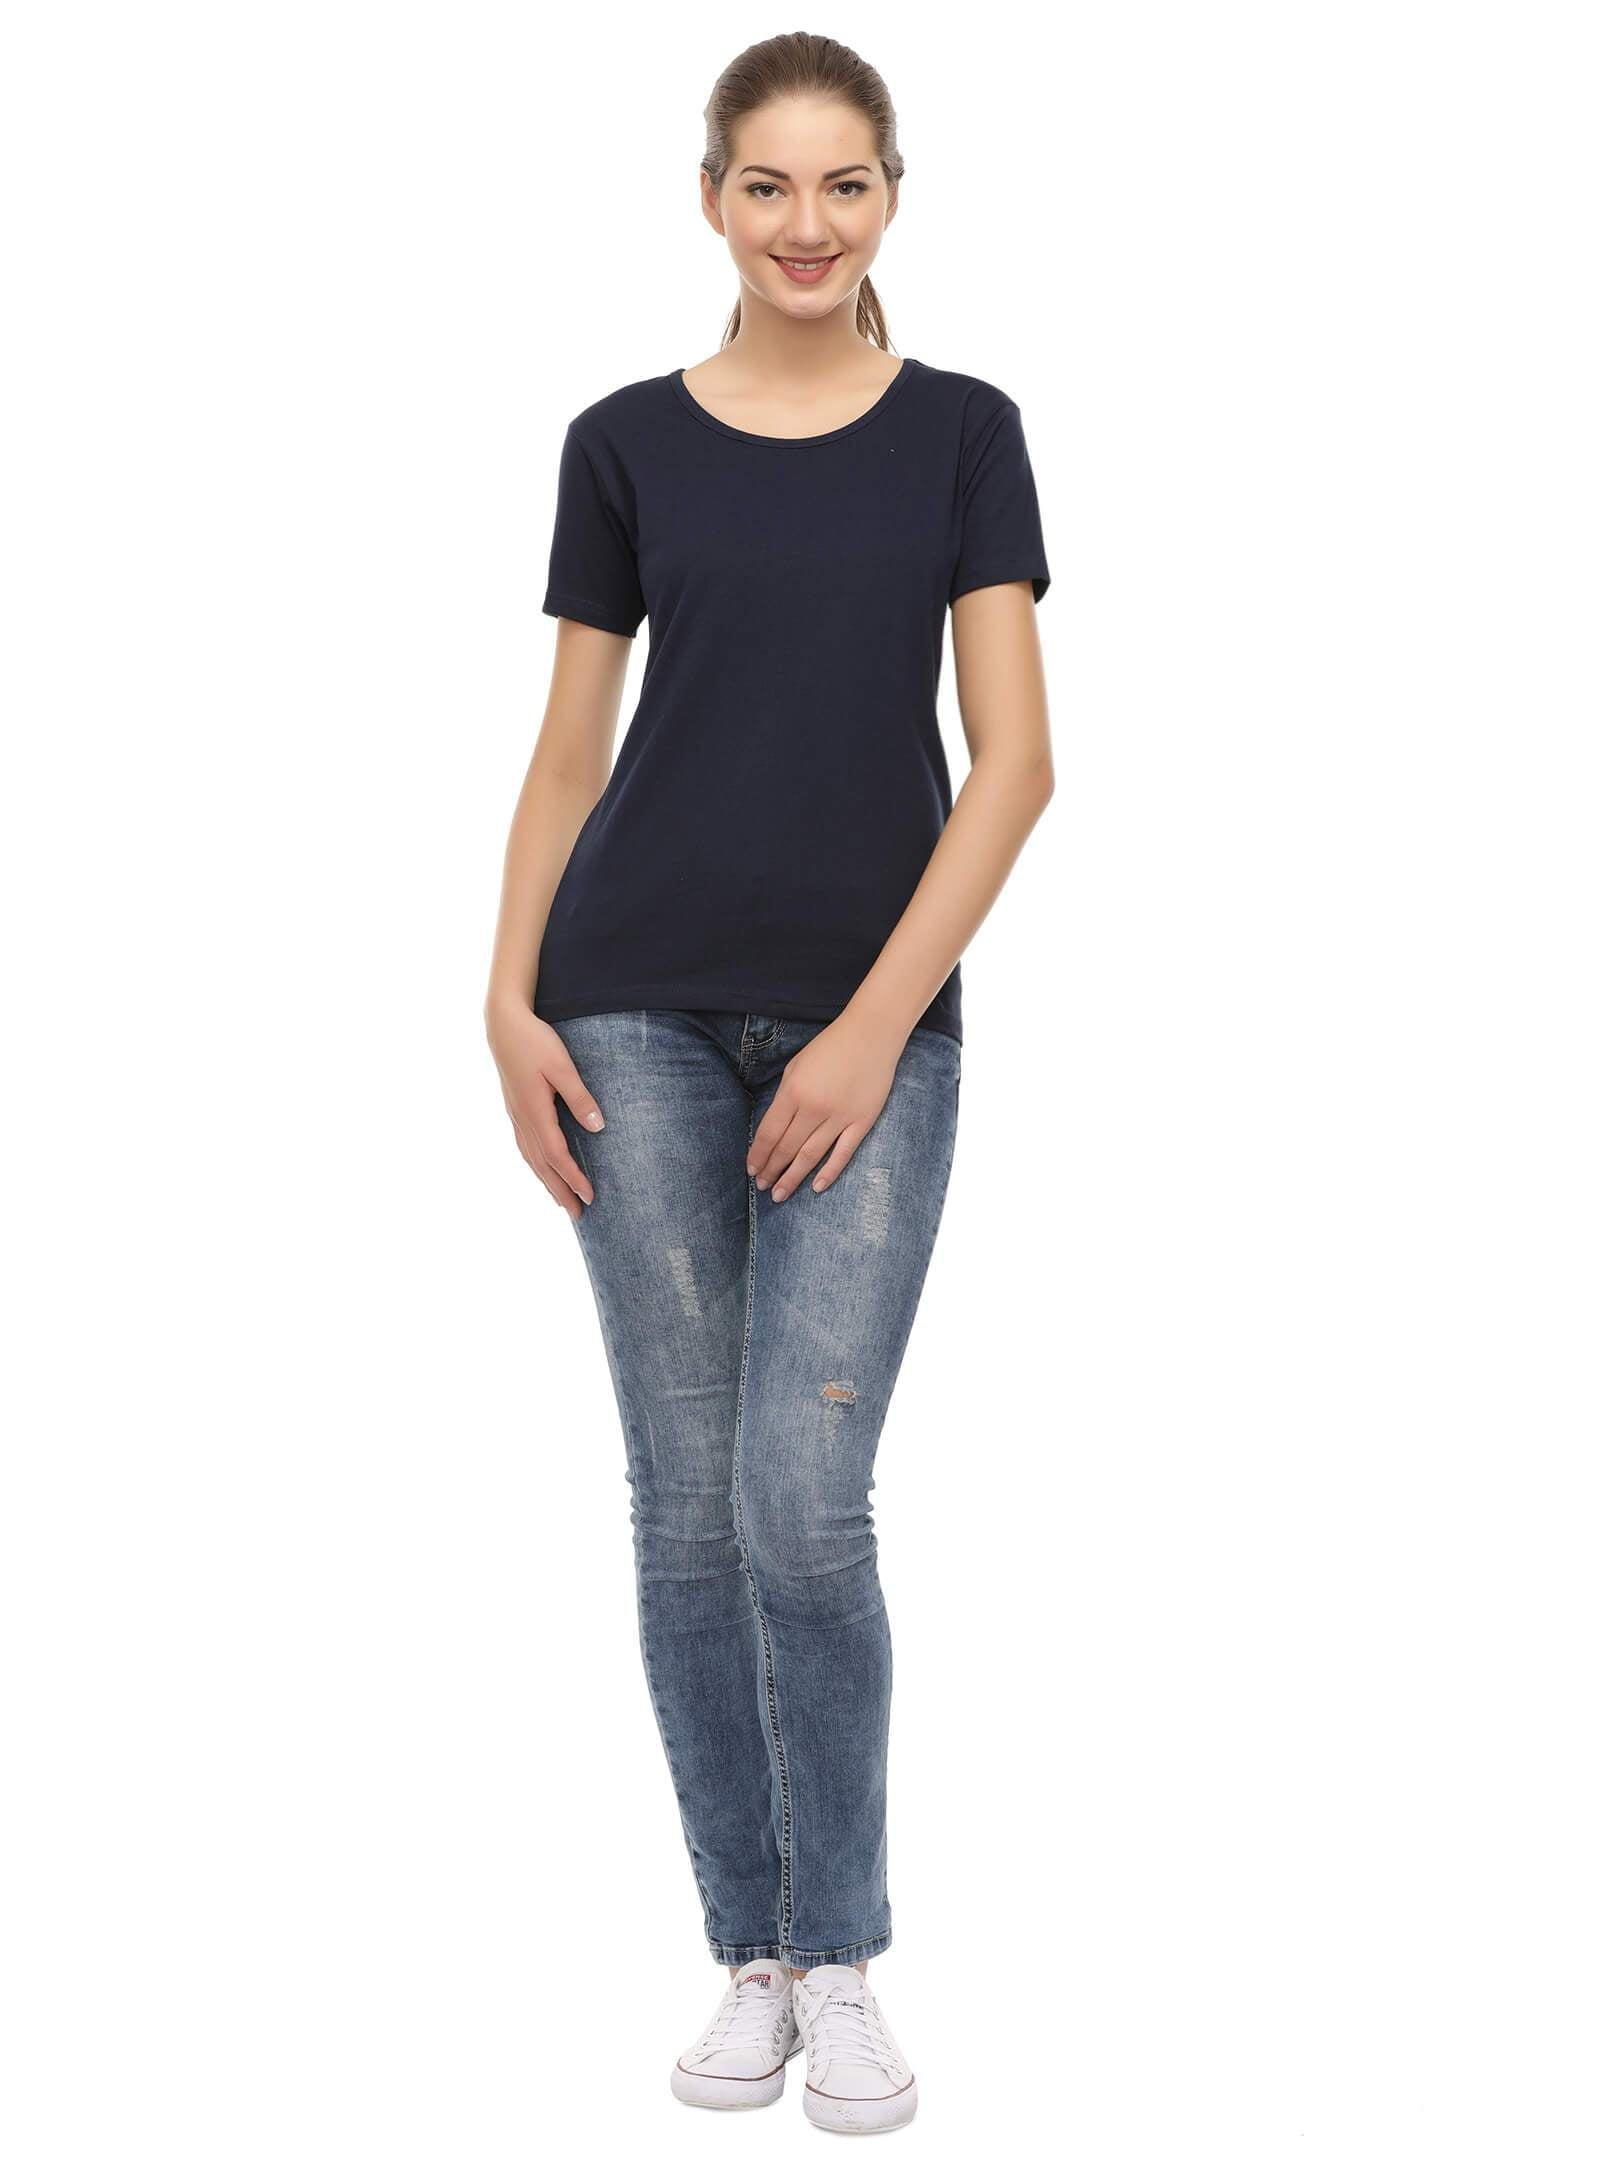 Amrak Women's Round Neck T-Shirt - Plain Navy